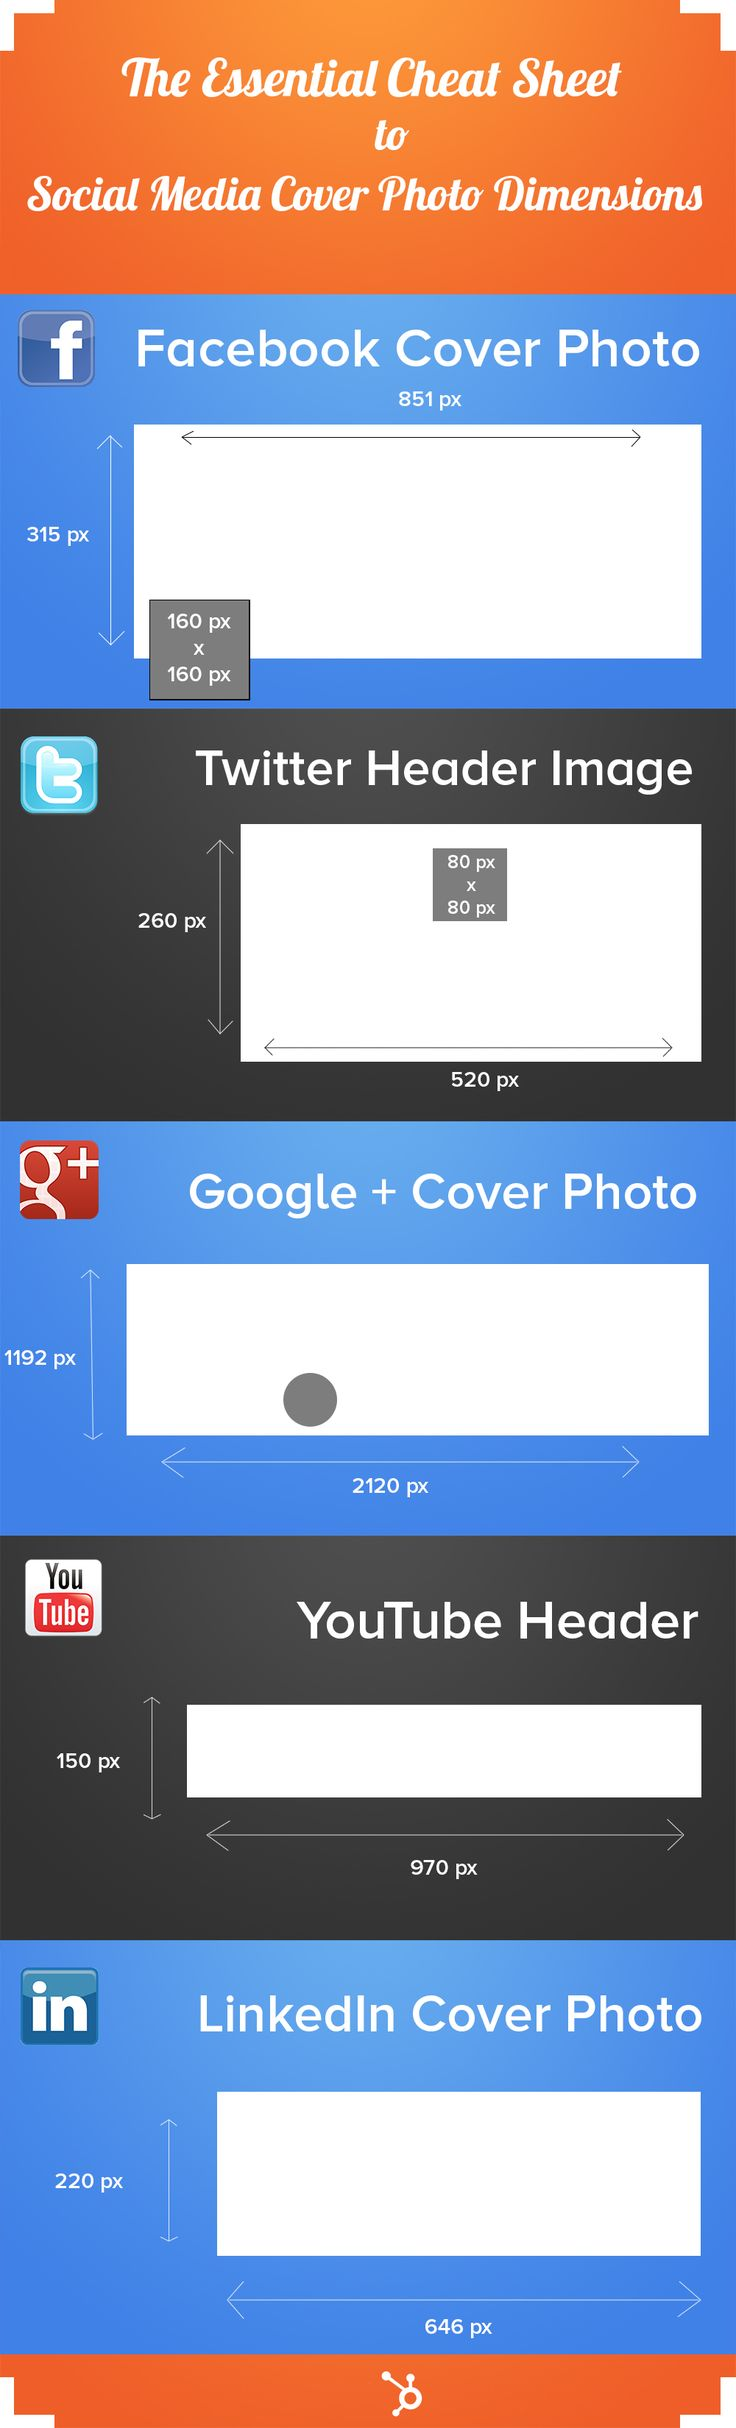 Essential_Cheat_Sheet_to_Social_Media_Cover_Photos_Size #facebook #twitter #google+ #linkedin